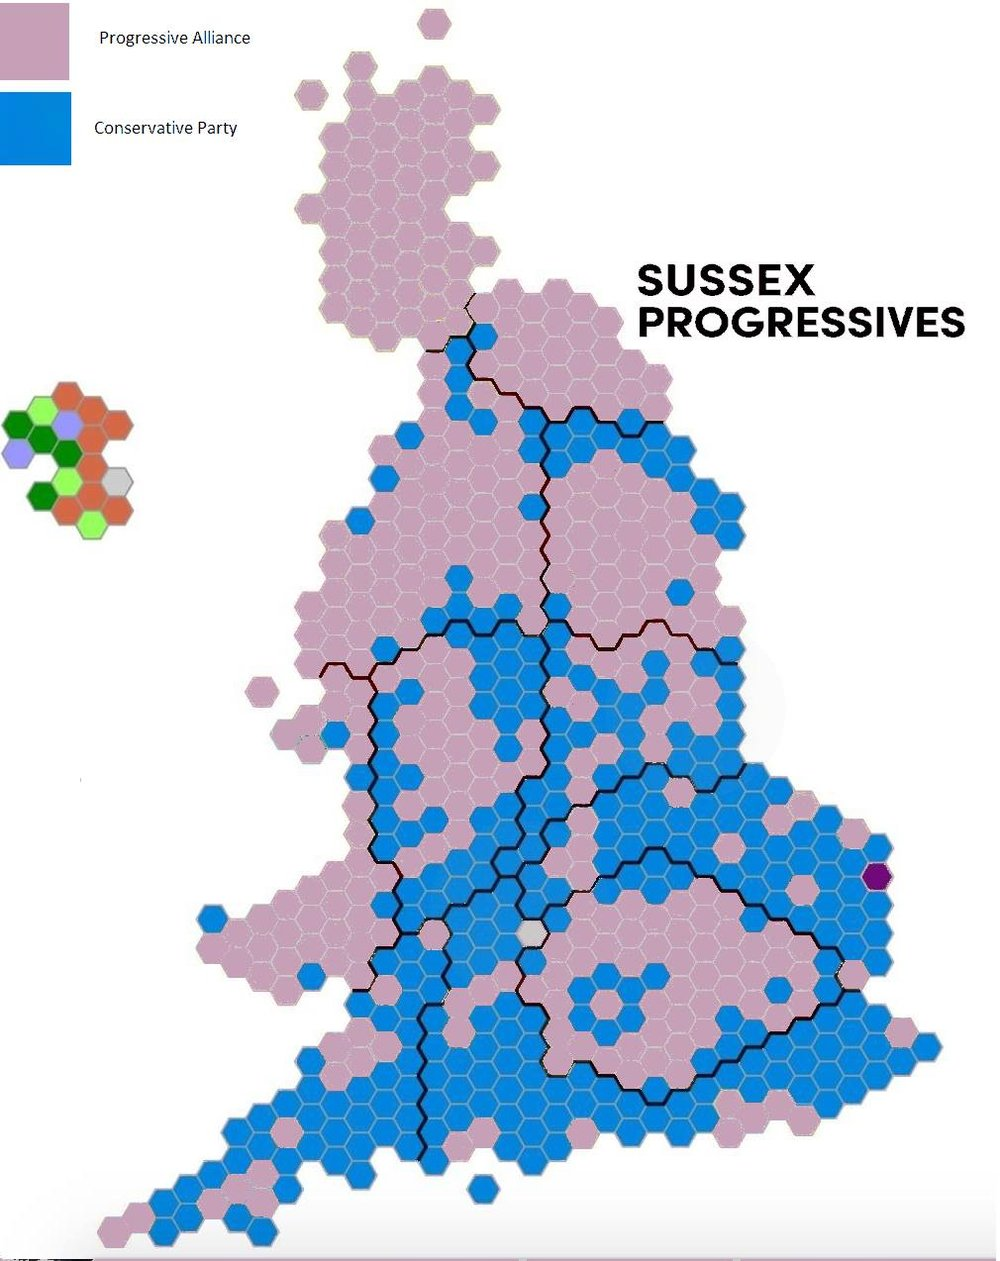 A hypothetical map of the 2015 election, if Labour, SNP, Lib Dems, Greens and Plaid had contested as a Progressive Alliance.